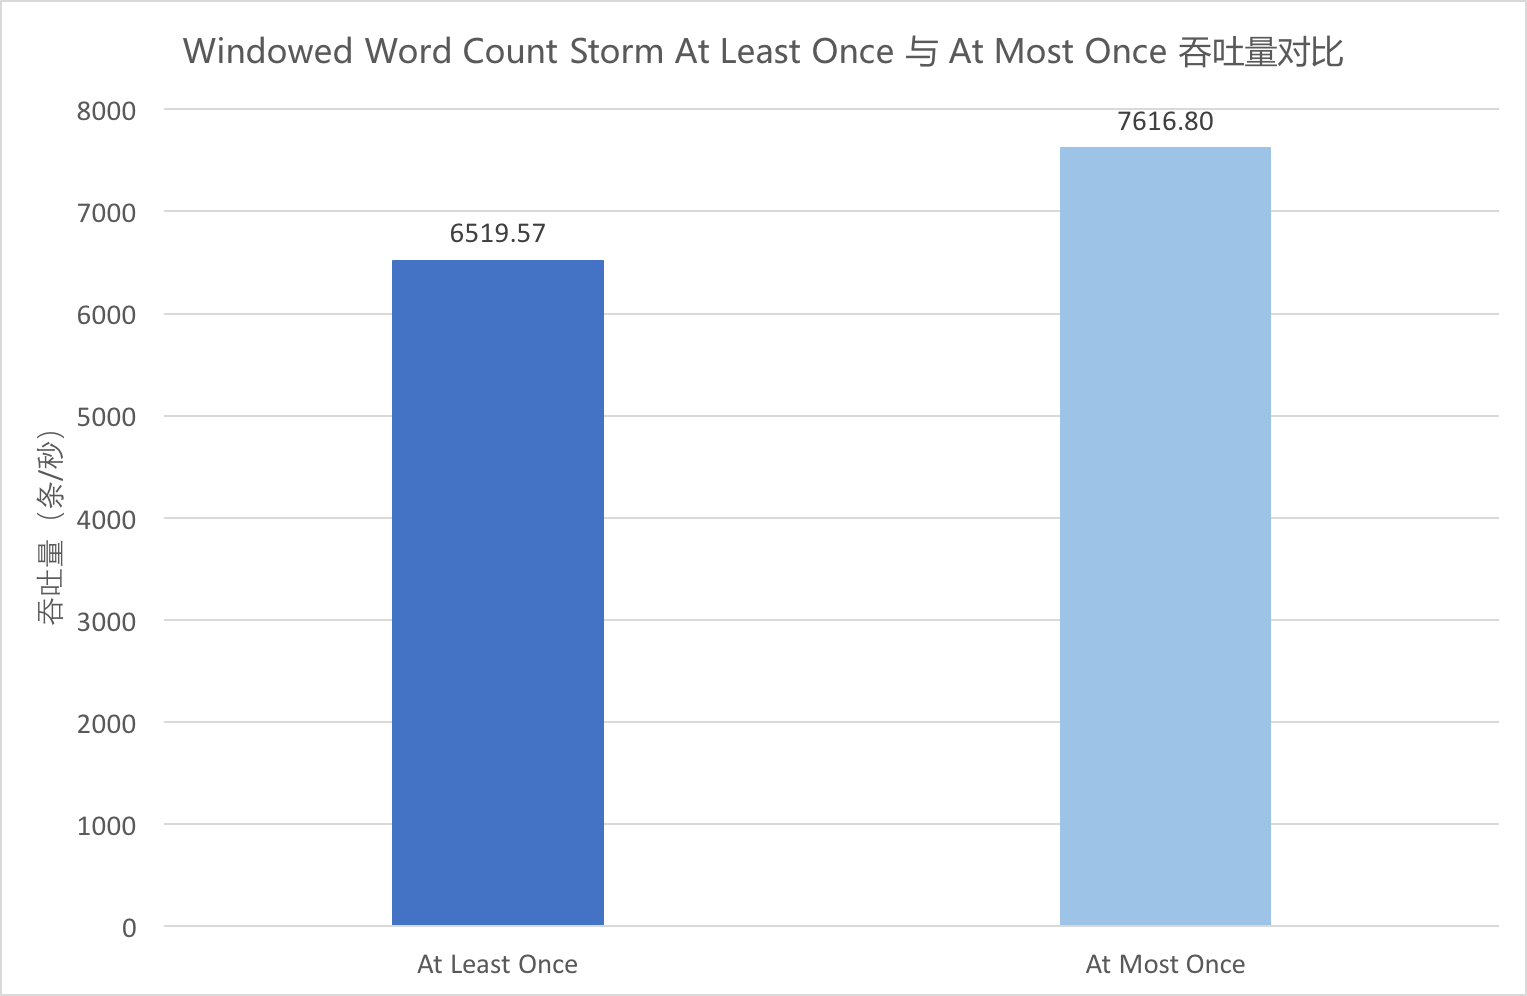 Windowed Word Count Storm At Least Once 与 At Most Once 吞吐量对比